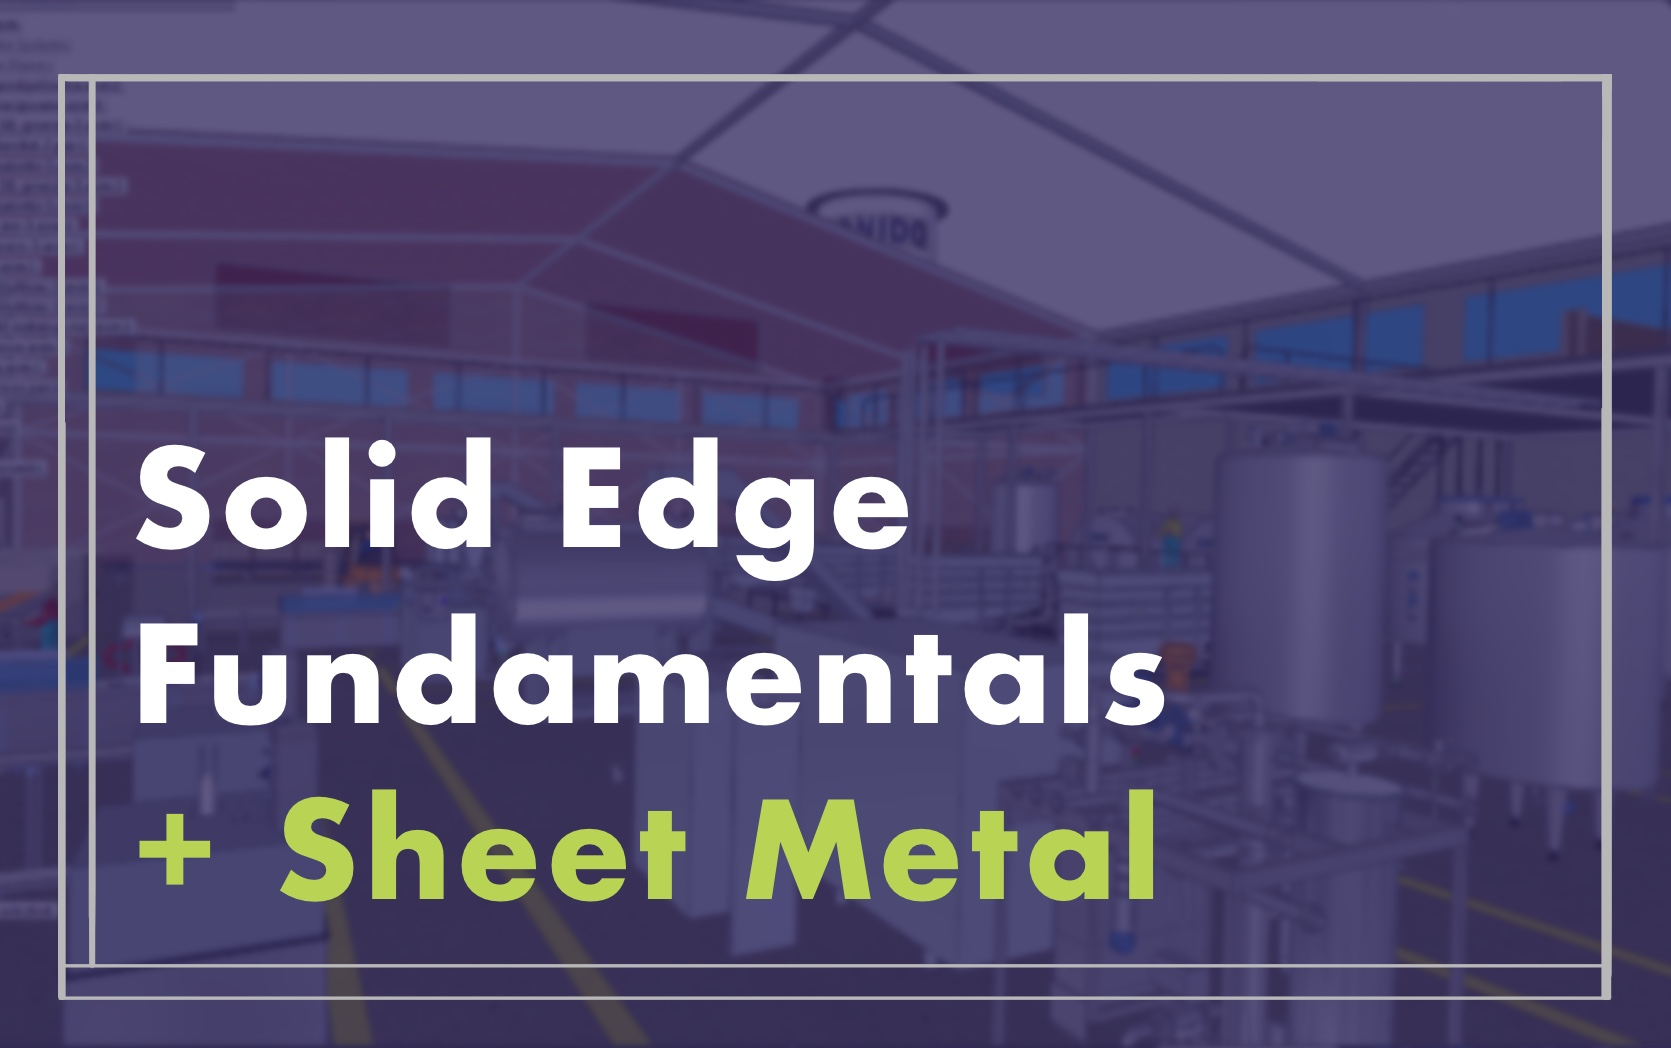 Solid Edge Fundamentals + Sheet Metal